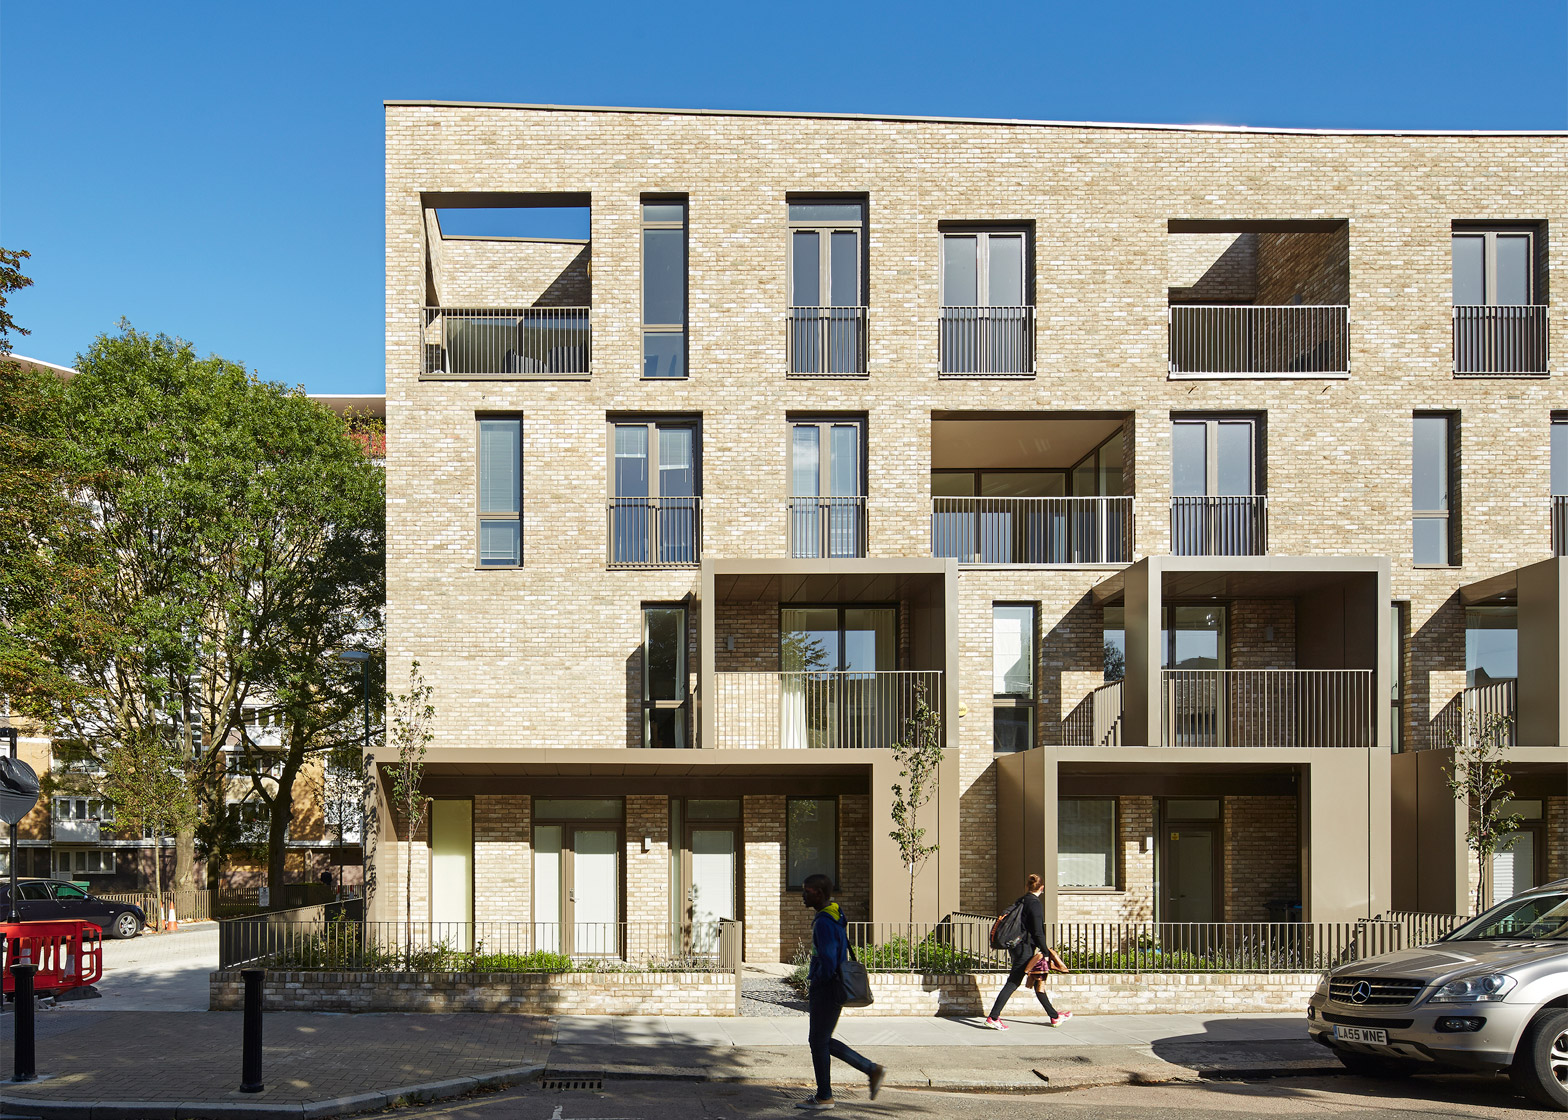 Ely Court, South Kilburn by Alison Brooks Architects Ltd and Hester Architects. Photograph by Paul Riddle